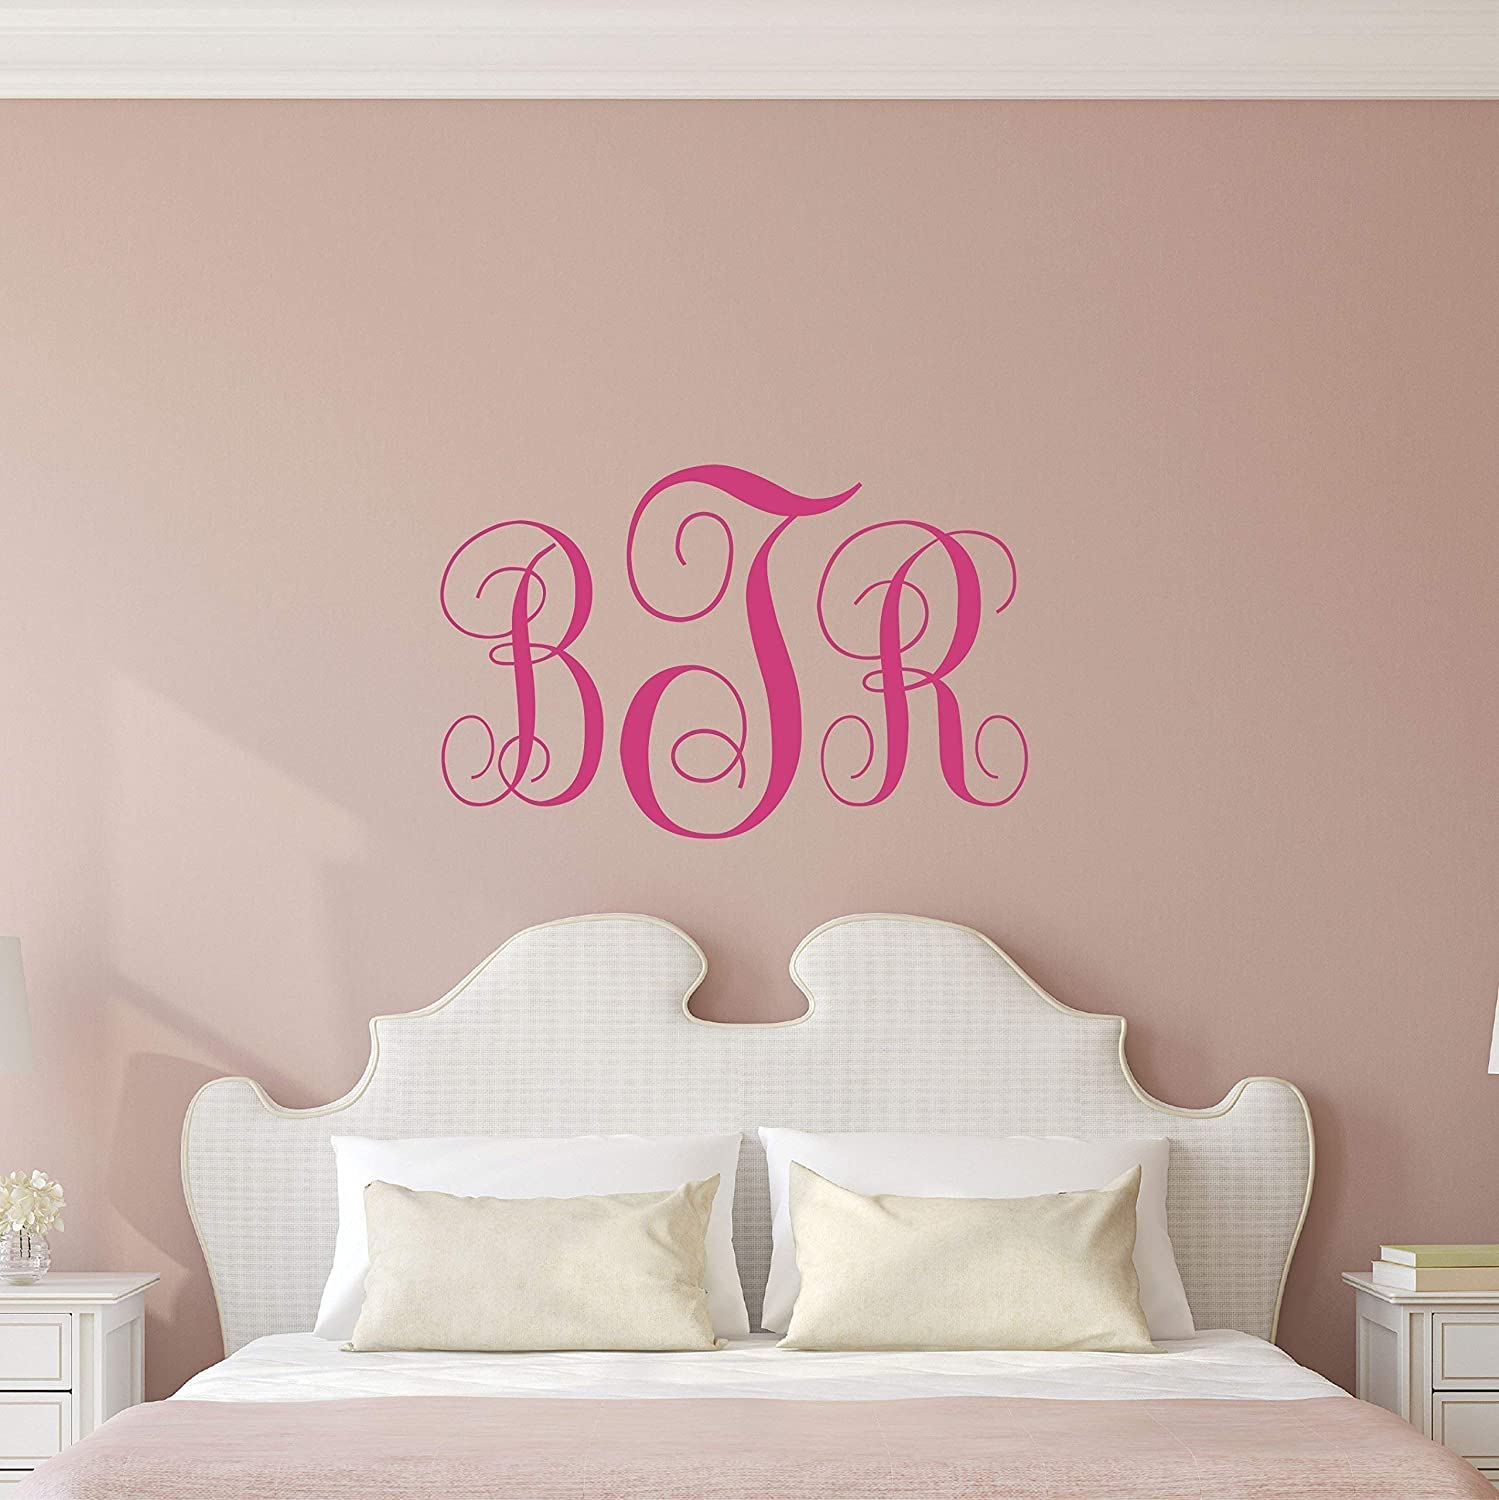 Baby Name Wall Decal Sticker Personalized Name Wall Decal Sticker Art Boys Girls Room Wall Decor Personalized Name Vinyl Wall Decal Custom Name Wall Decal Monogram